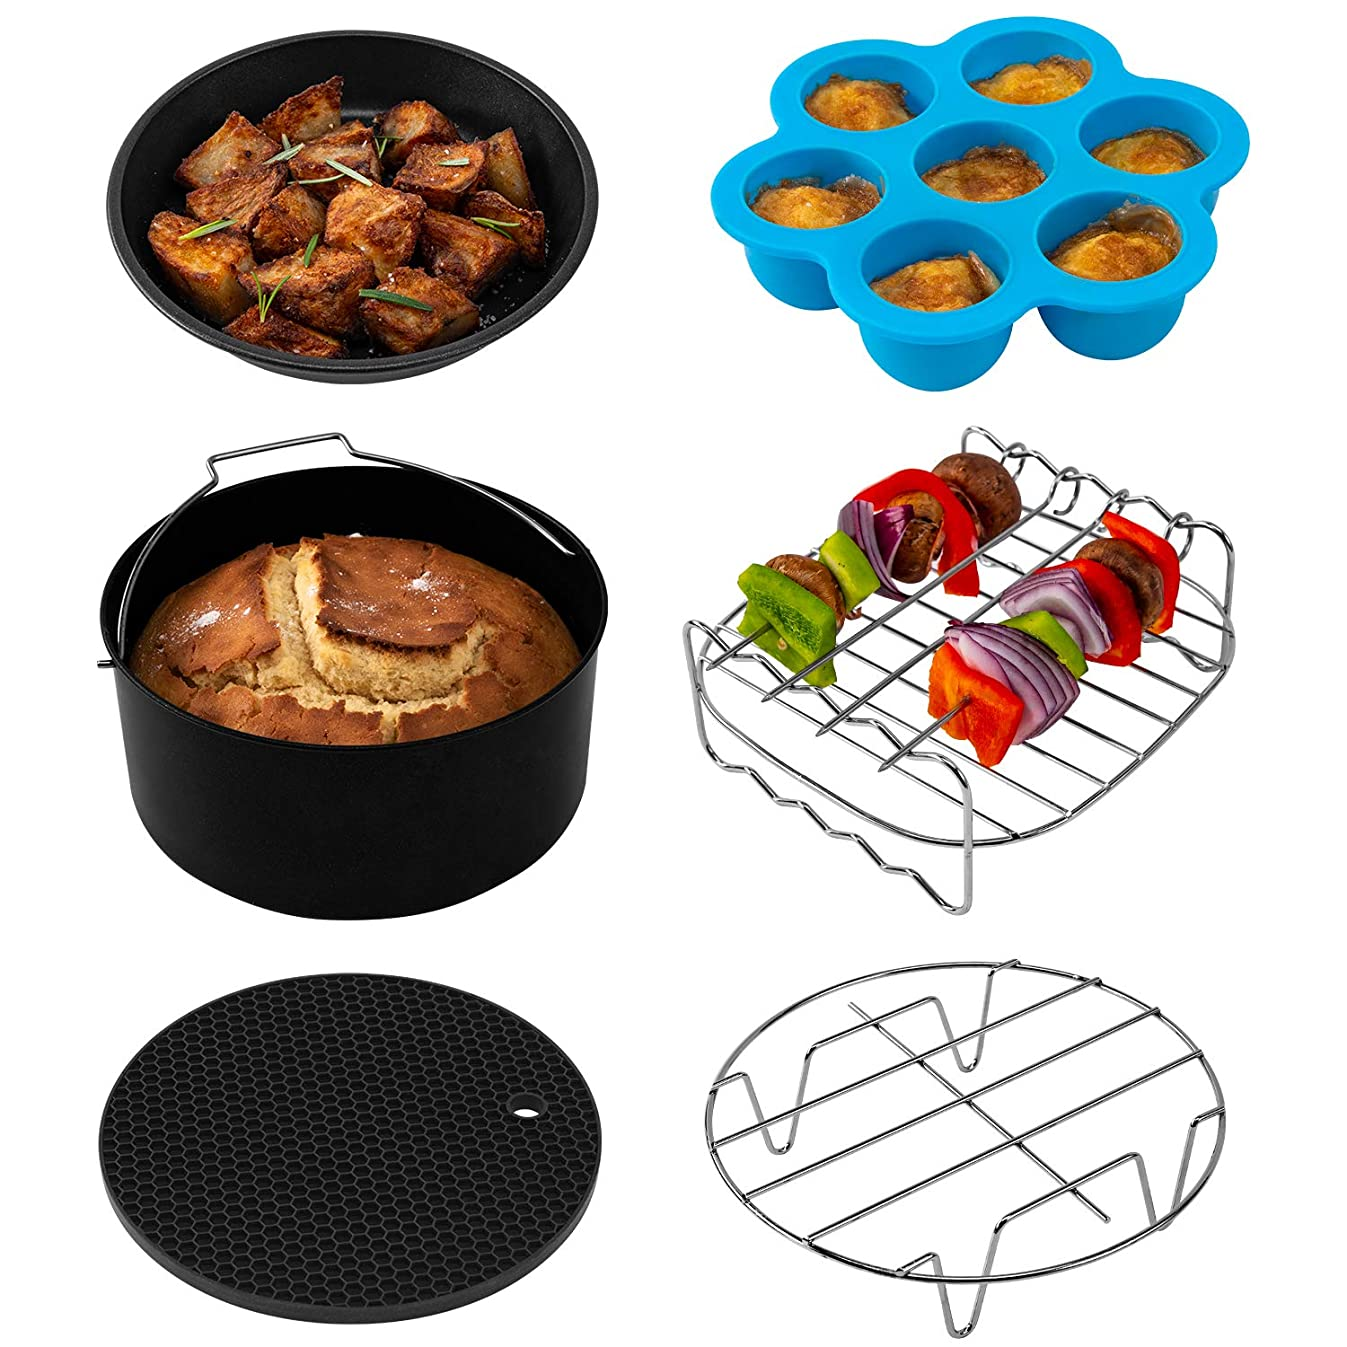 COSORI Air Fryer Accessories(C137-6AC), Set of 6 Fit all 3.7, 4.2, 5.3QT Air Fryer,FDA Compliant, BPA Free, Dishwasher Safe, Nonstick Coating, 2-Year Warranty